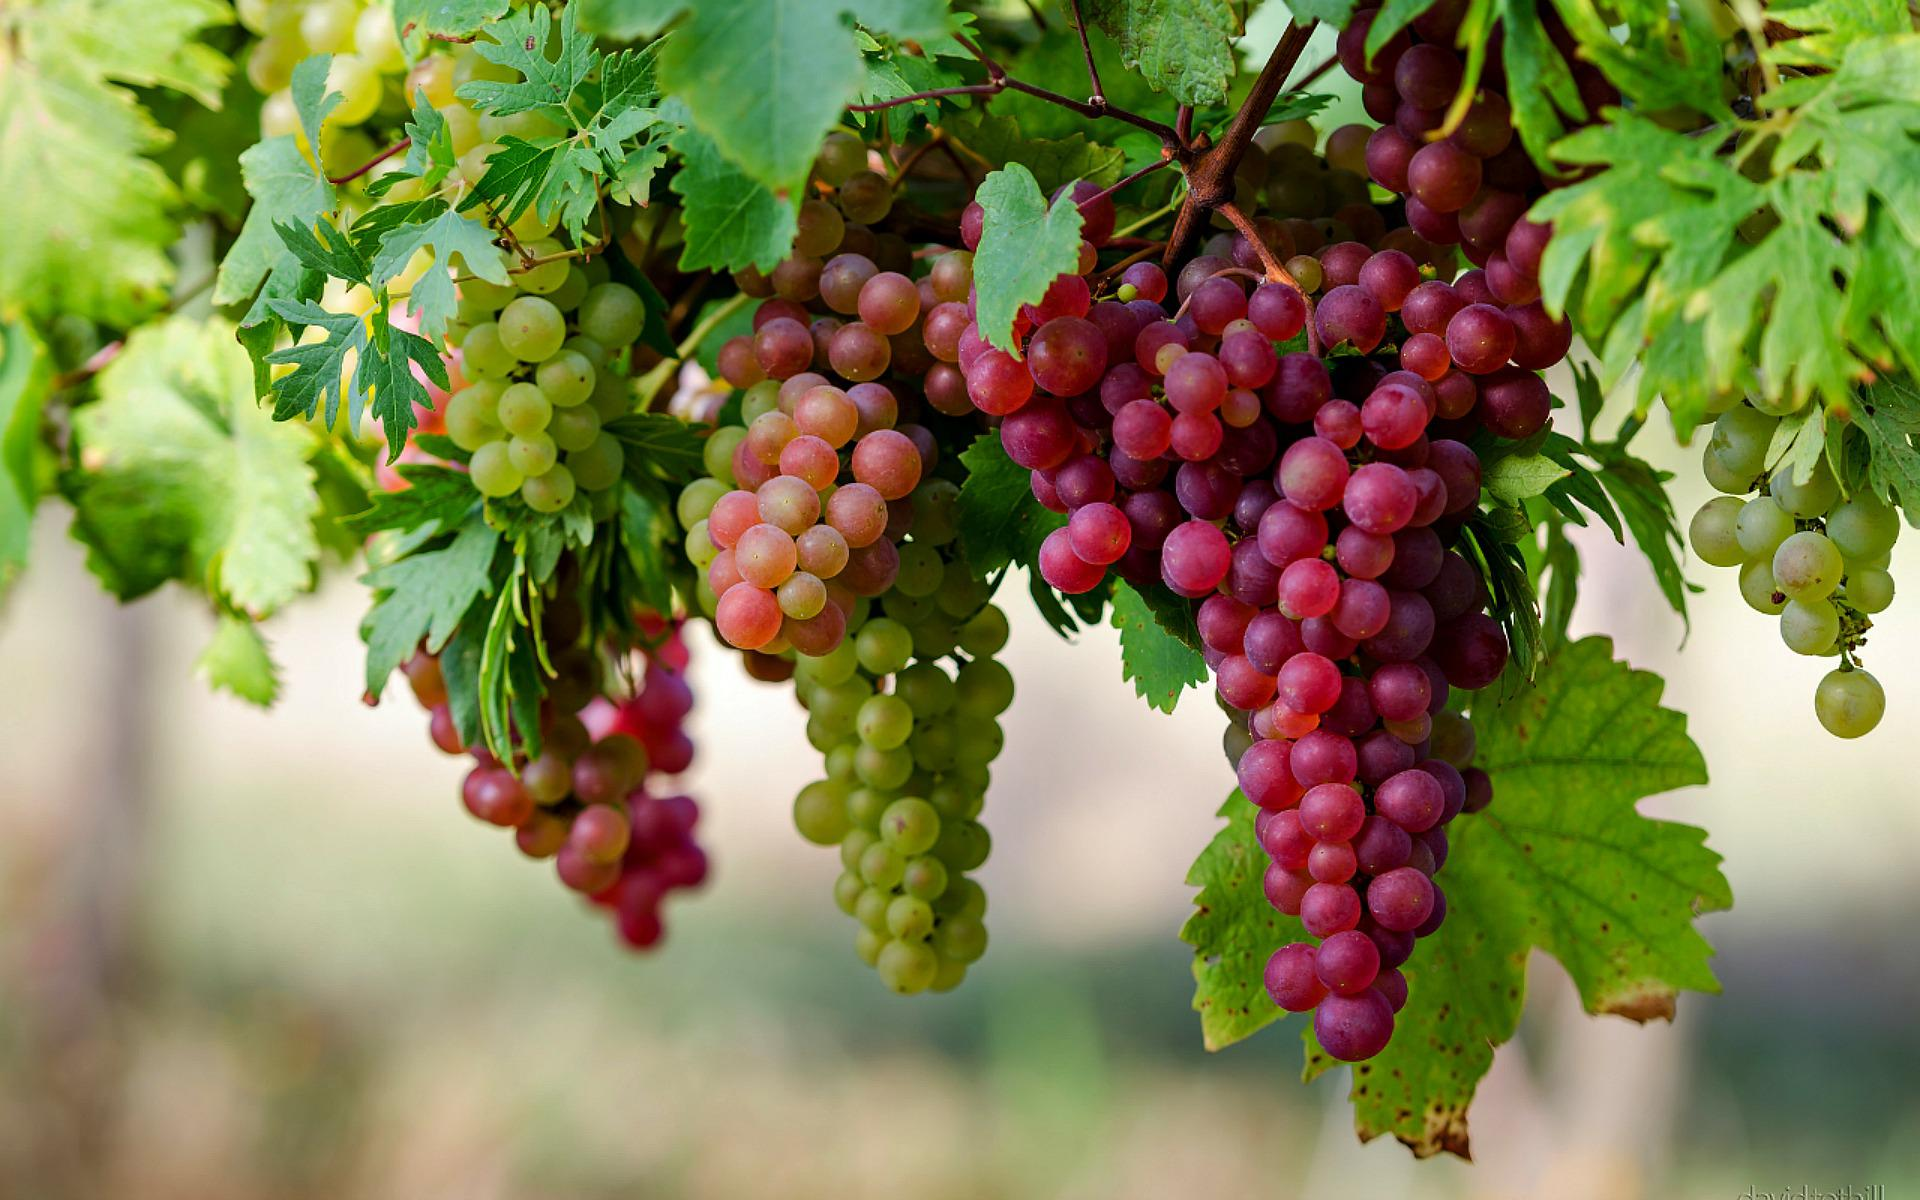 History of Grapes: Grapes